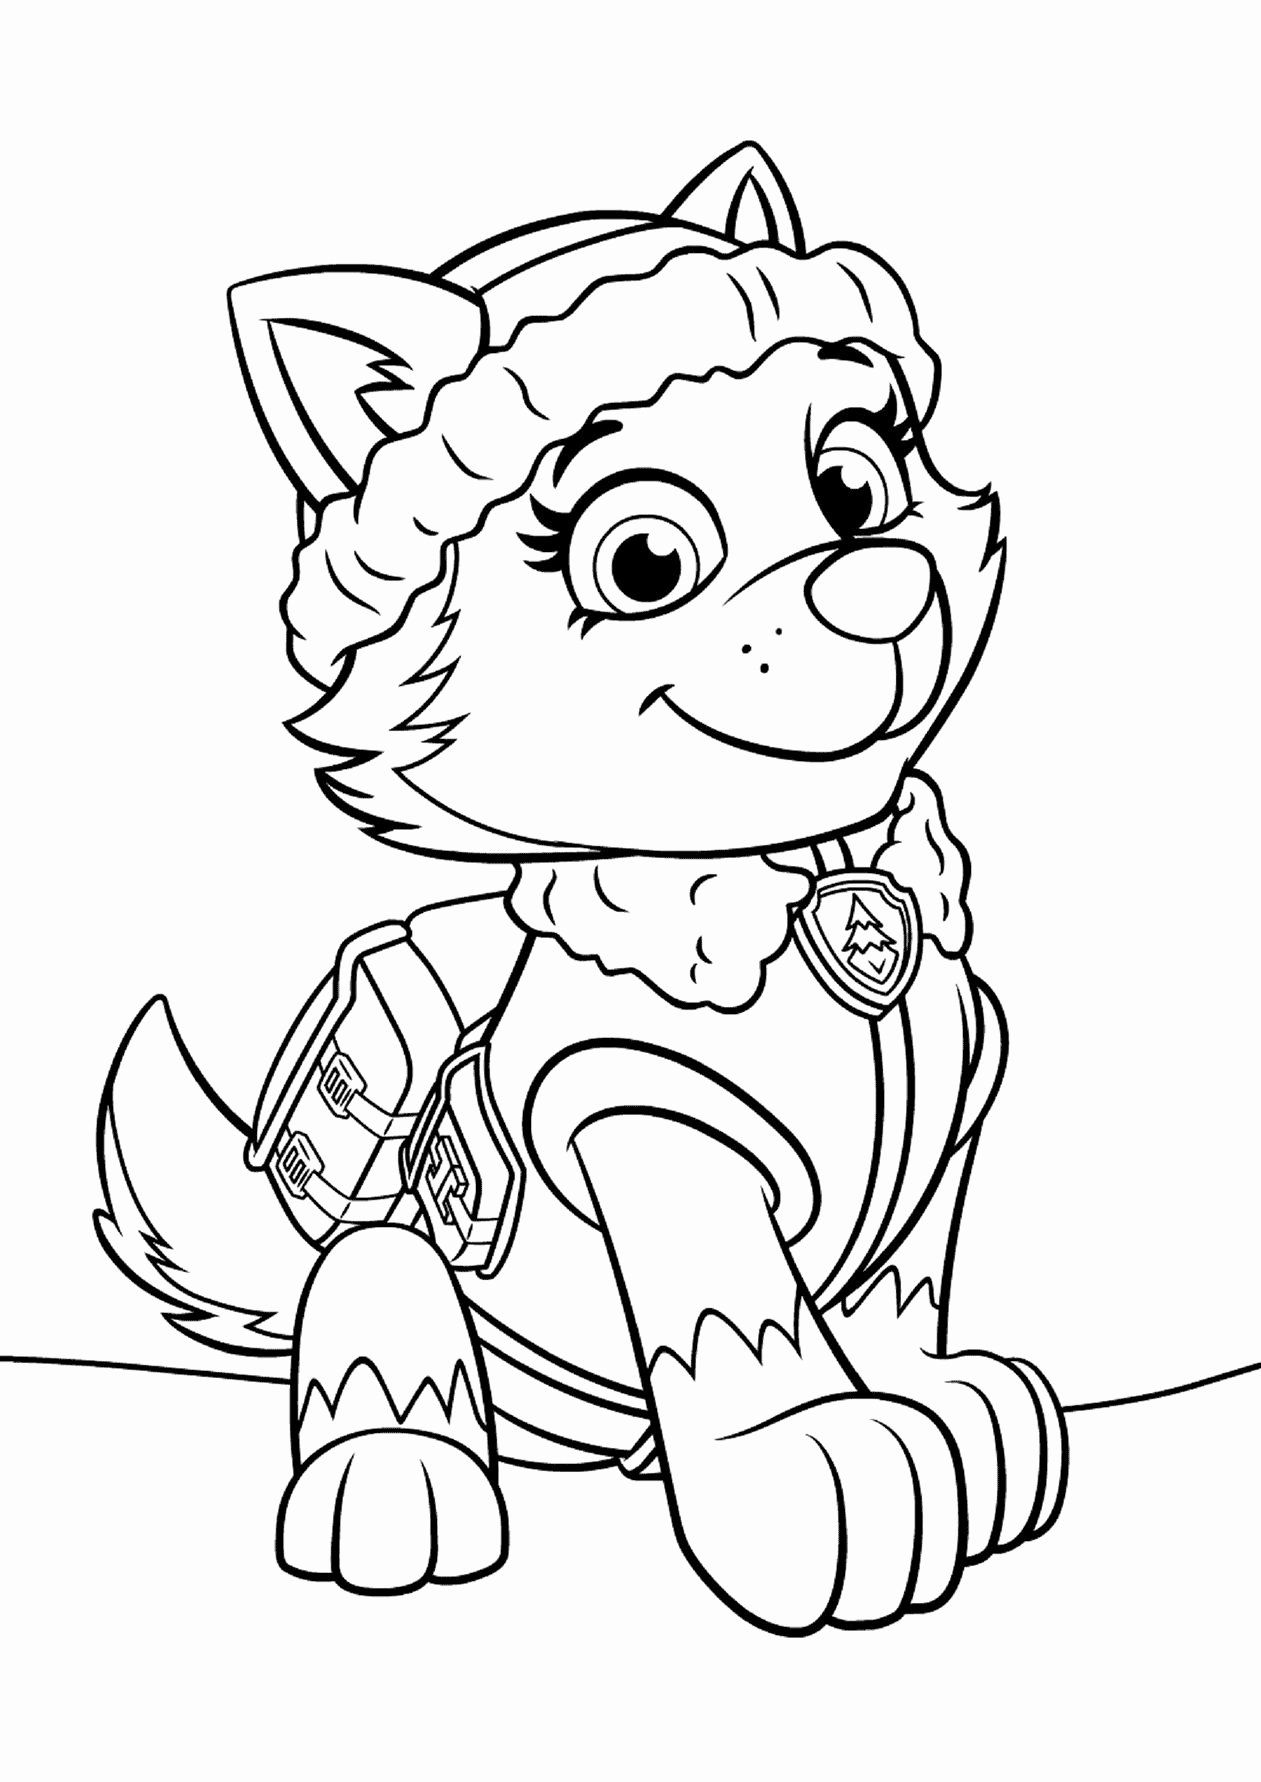 32 Paw Patrol Everest Coloring Page in 2020 Paw patrol